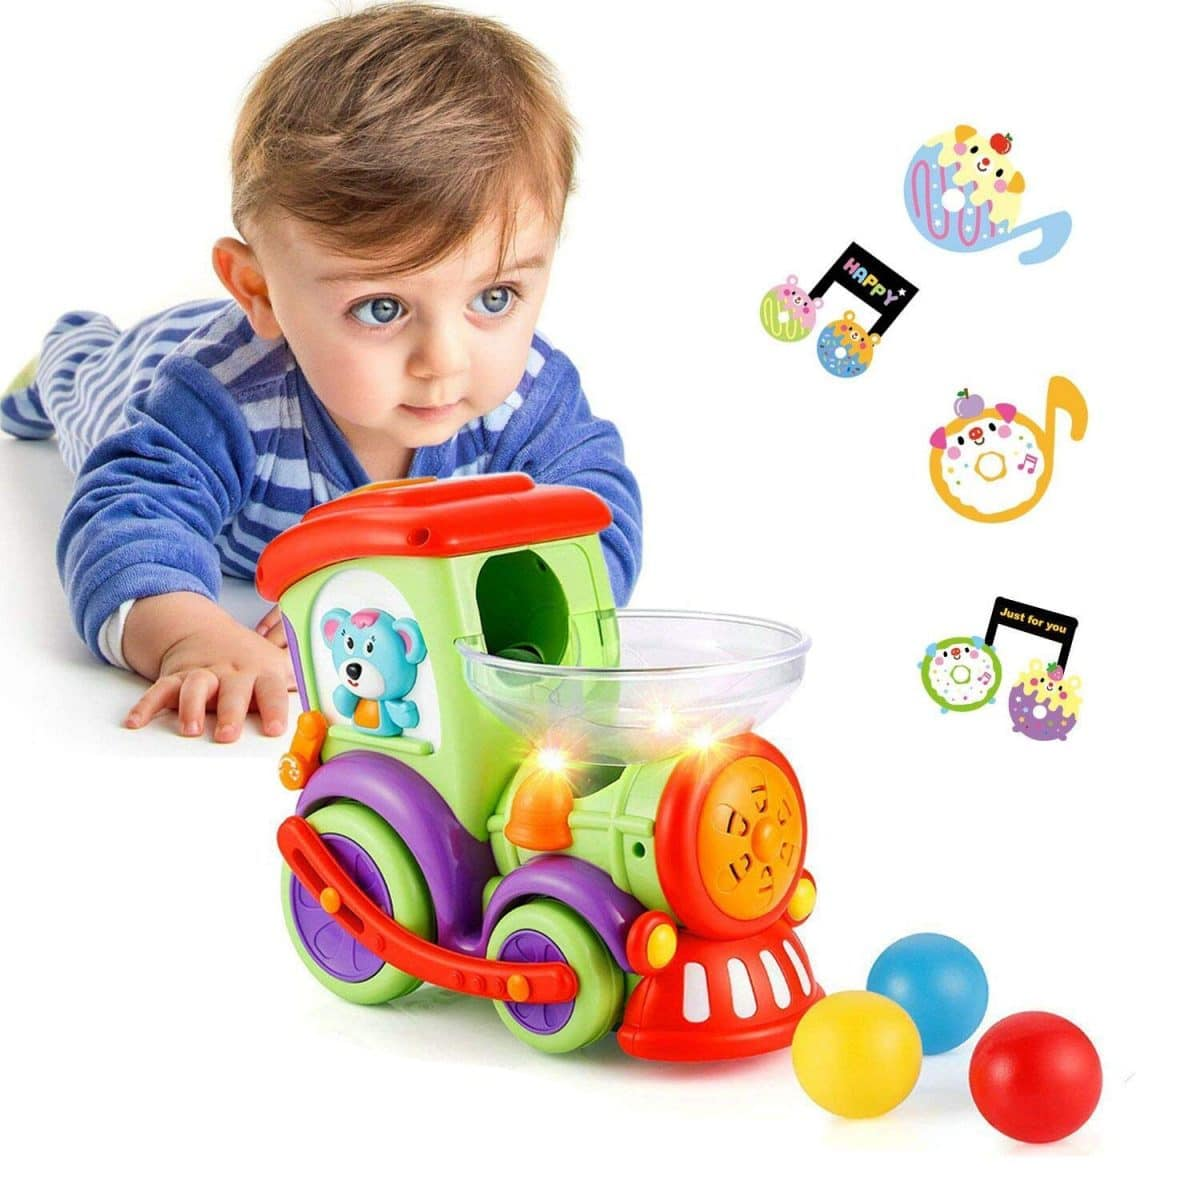 Baby Intelligence Plastic Hand Bell Rattle Funny Educational Toy Xmas  Gift 6ON